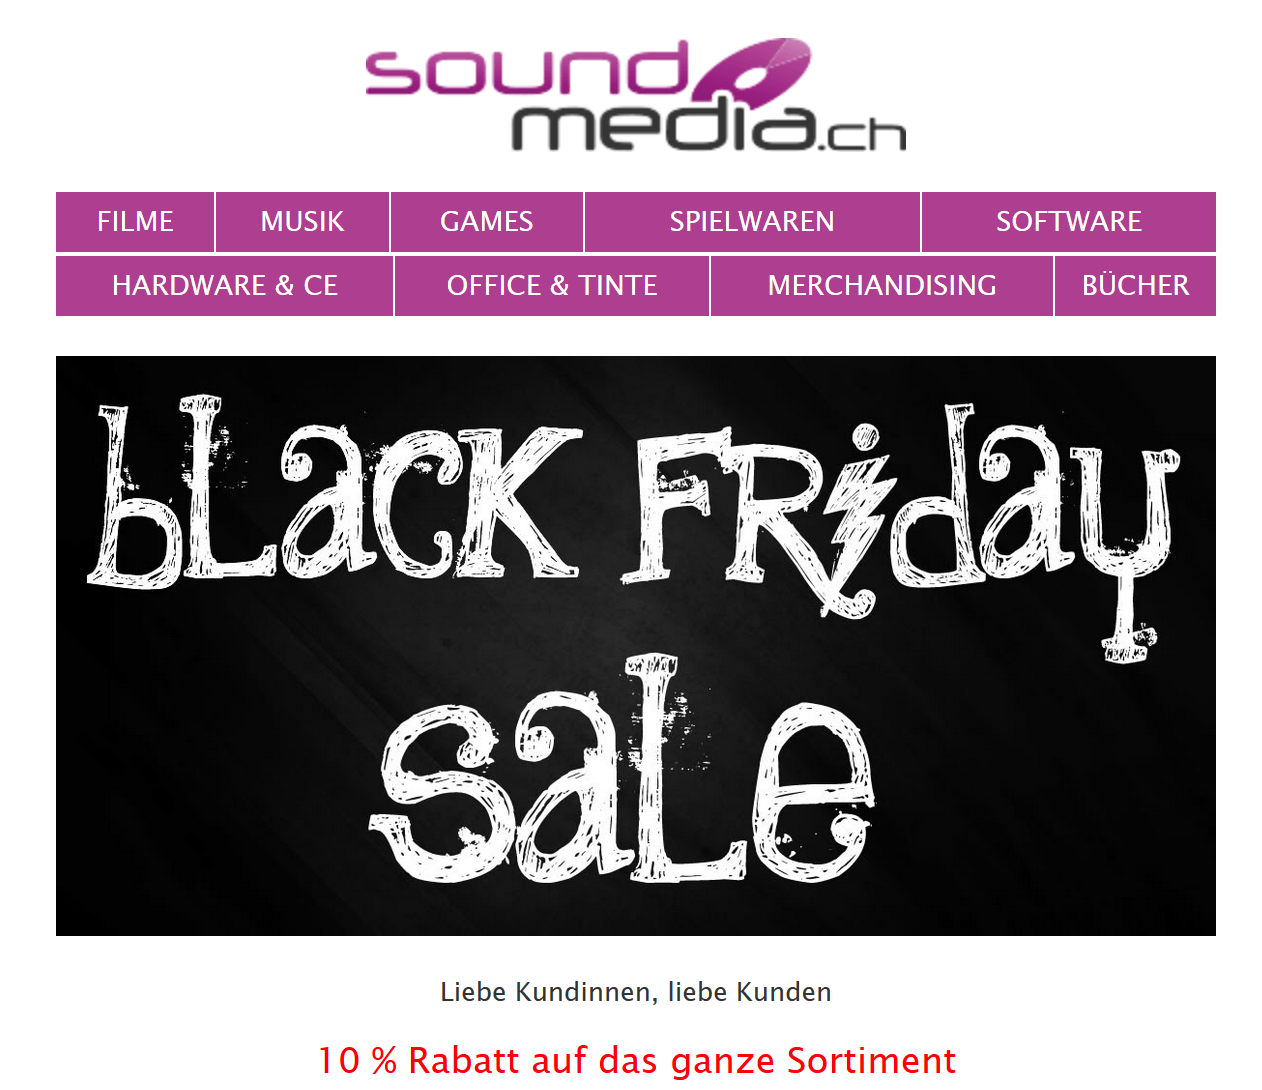 Black Friday Angebot Alle Soundmedia Angebote Zum Black Friday Und Cyber Monday